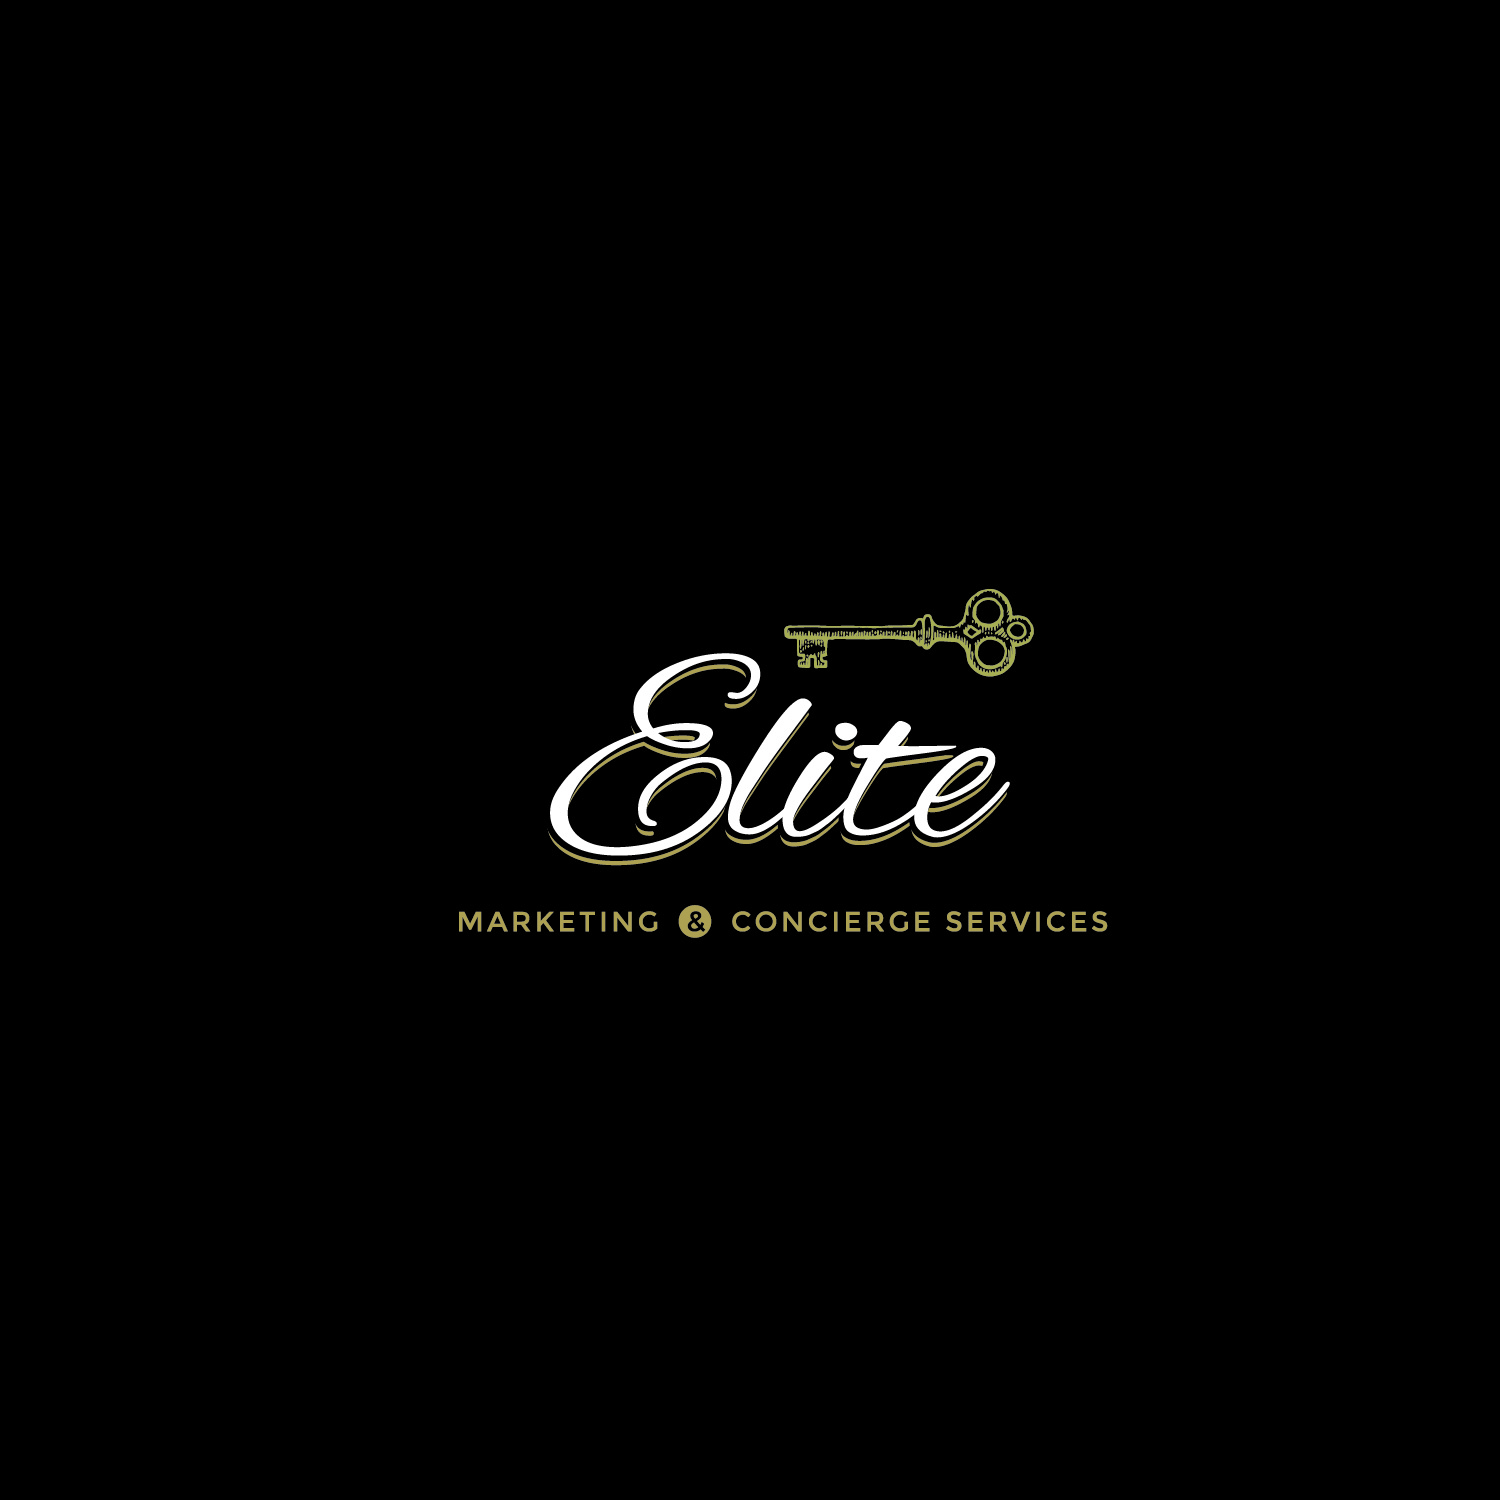 Elite Marketing & Concierge Services